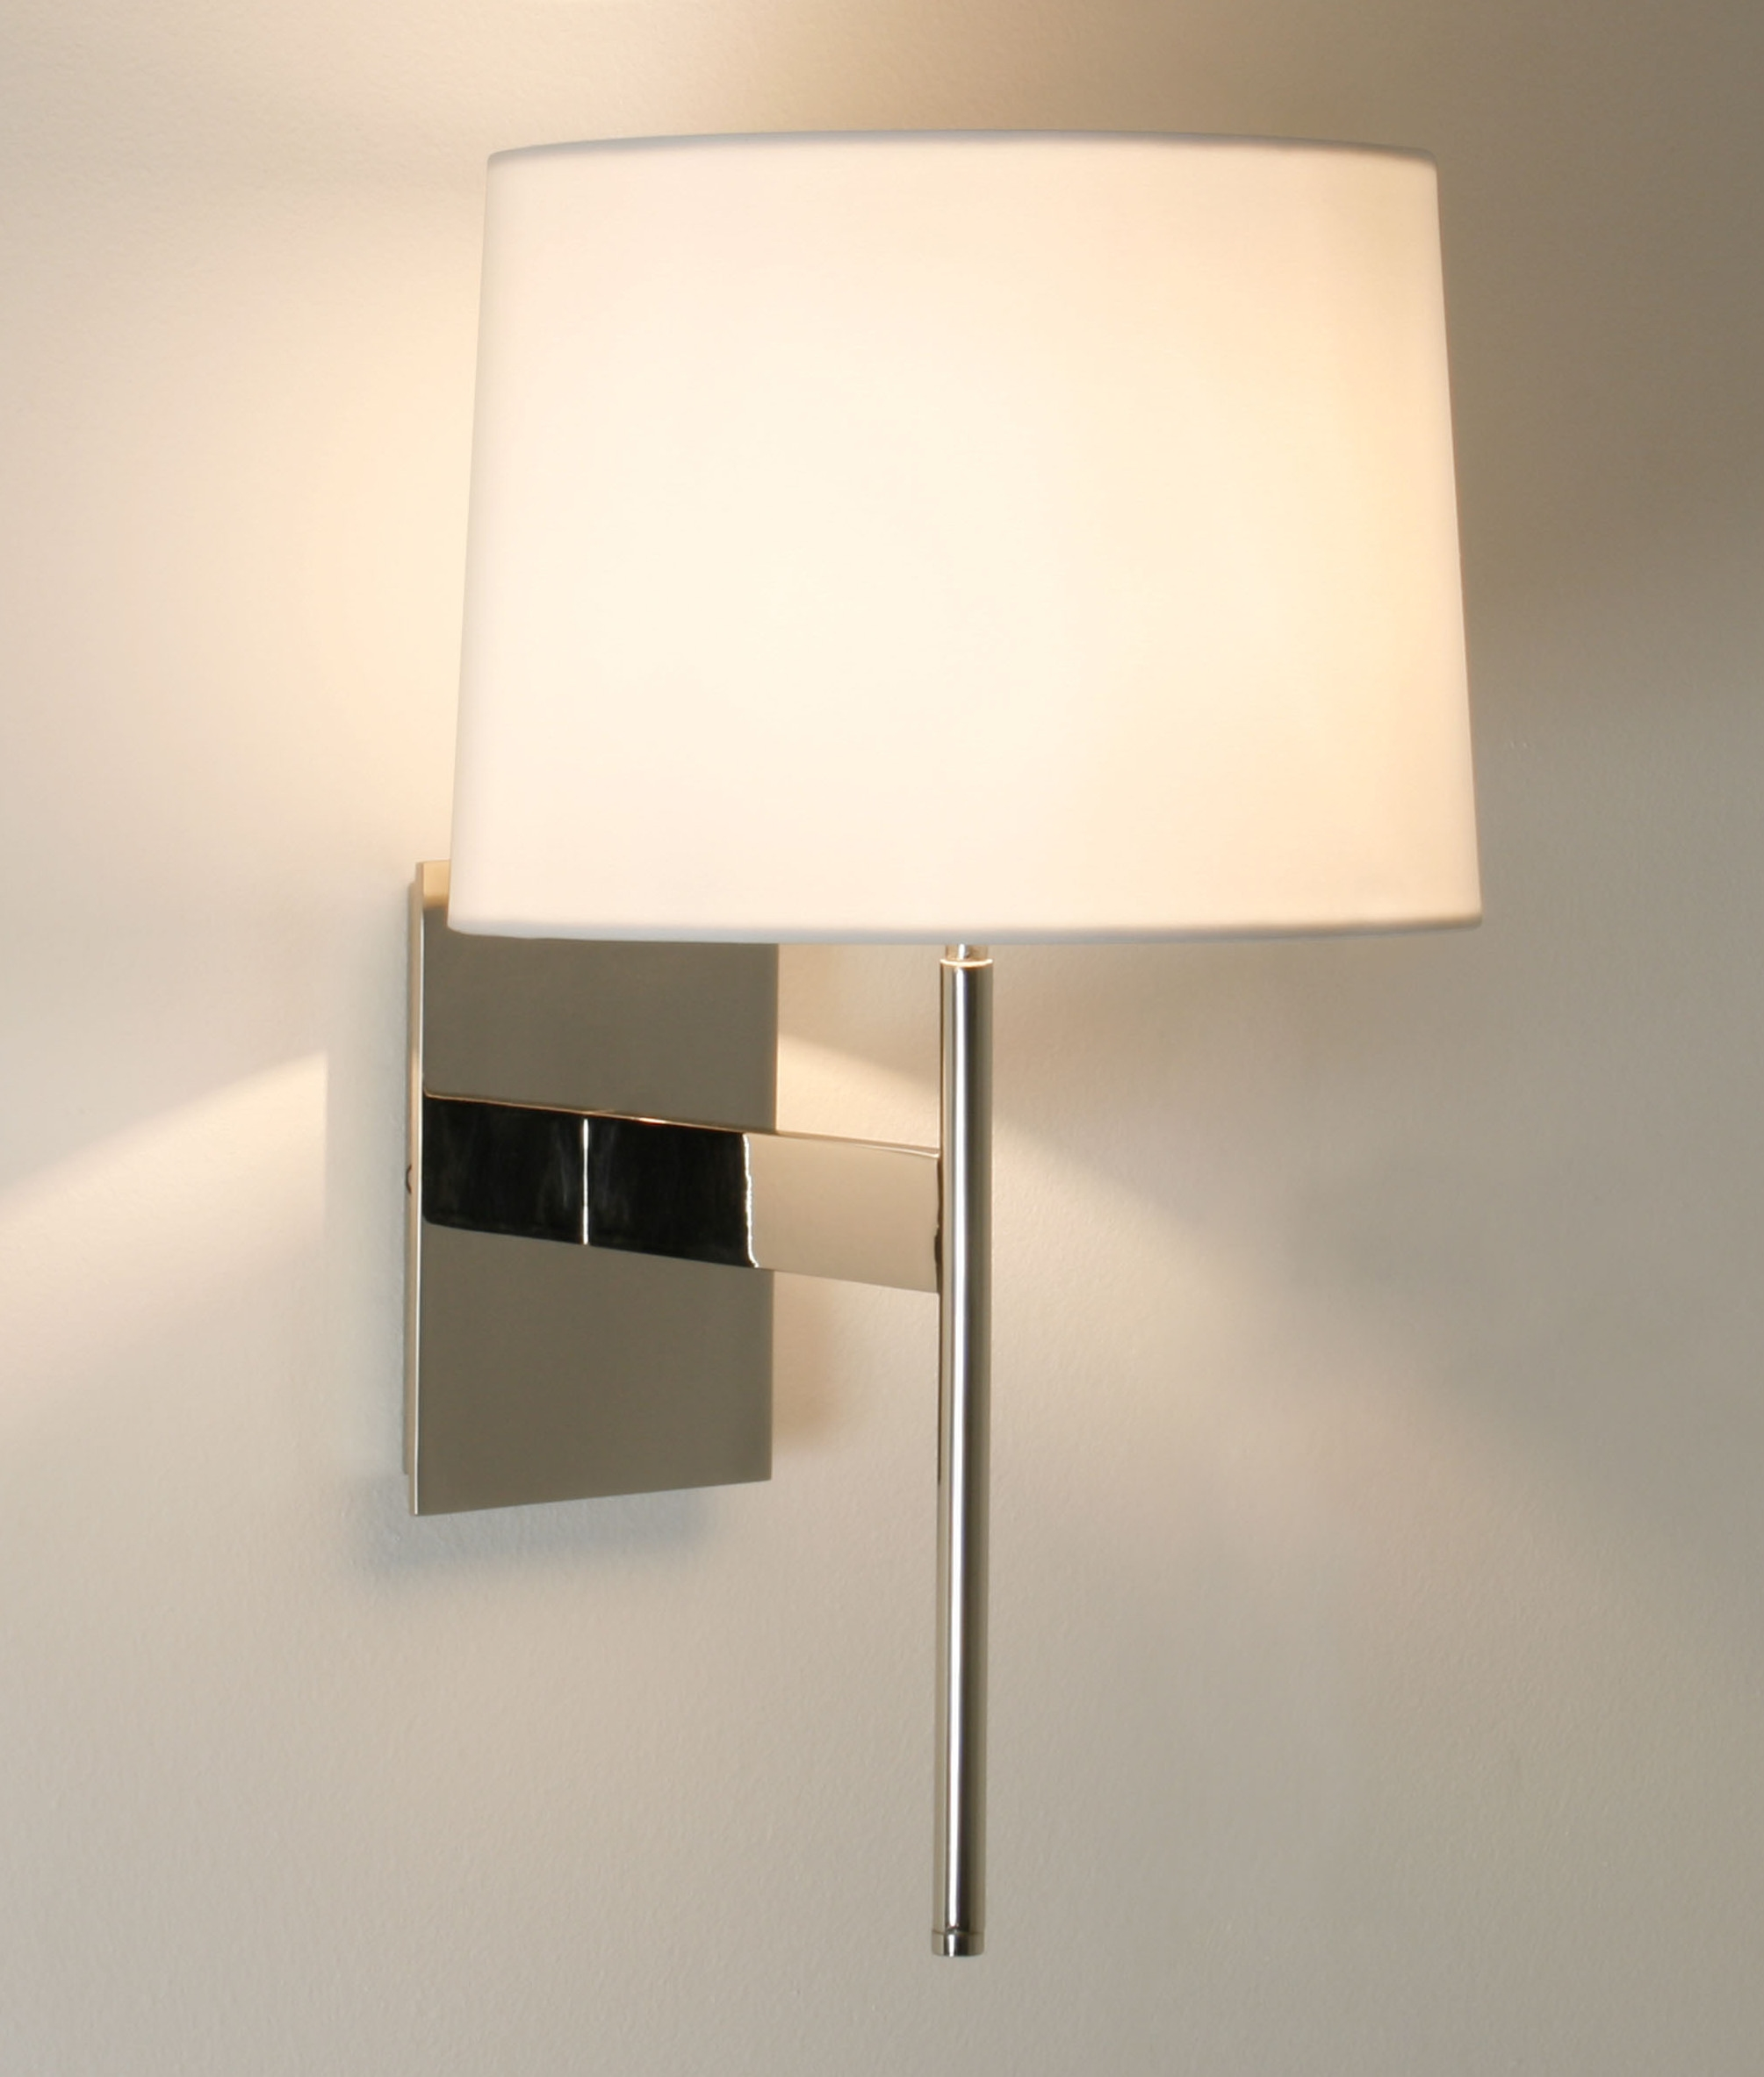 Simple Fabric Tall Wall Light: Elegant Wall Light With Fabric Shade Is Available In Three